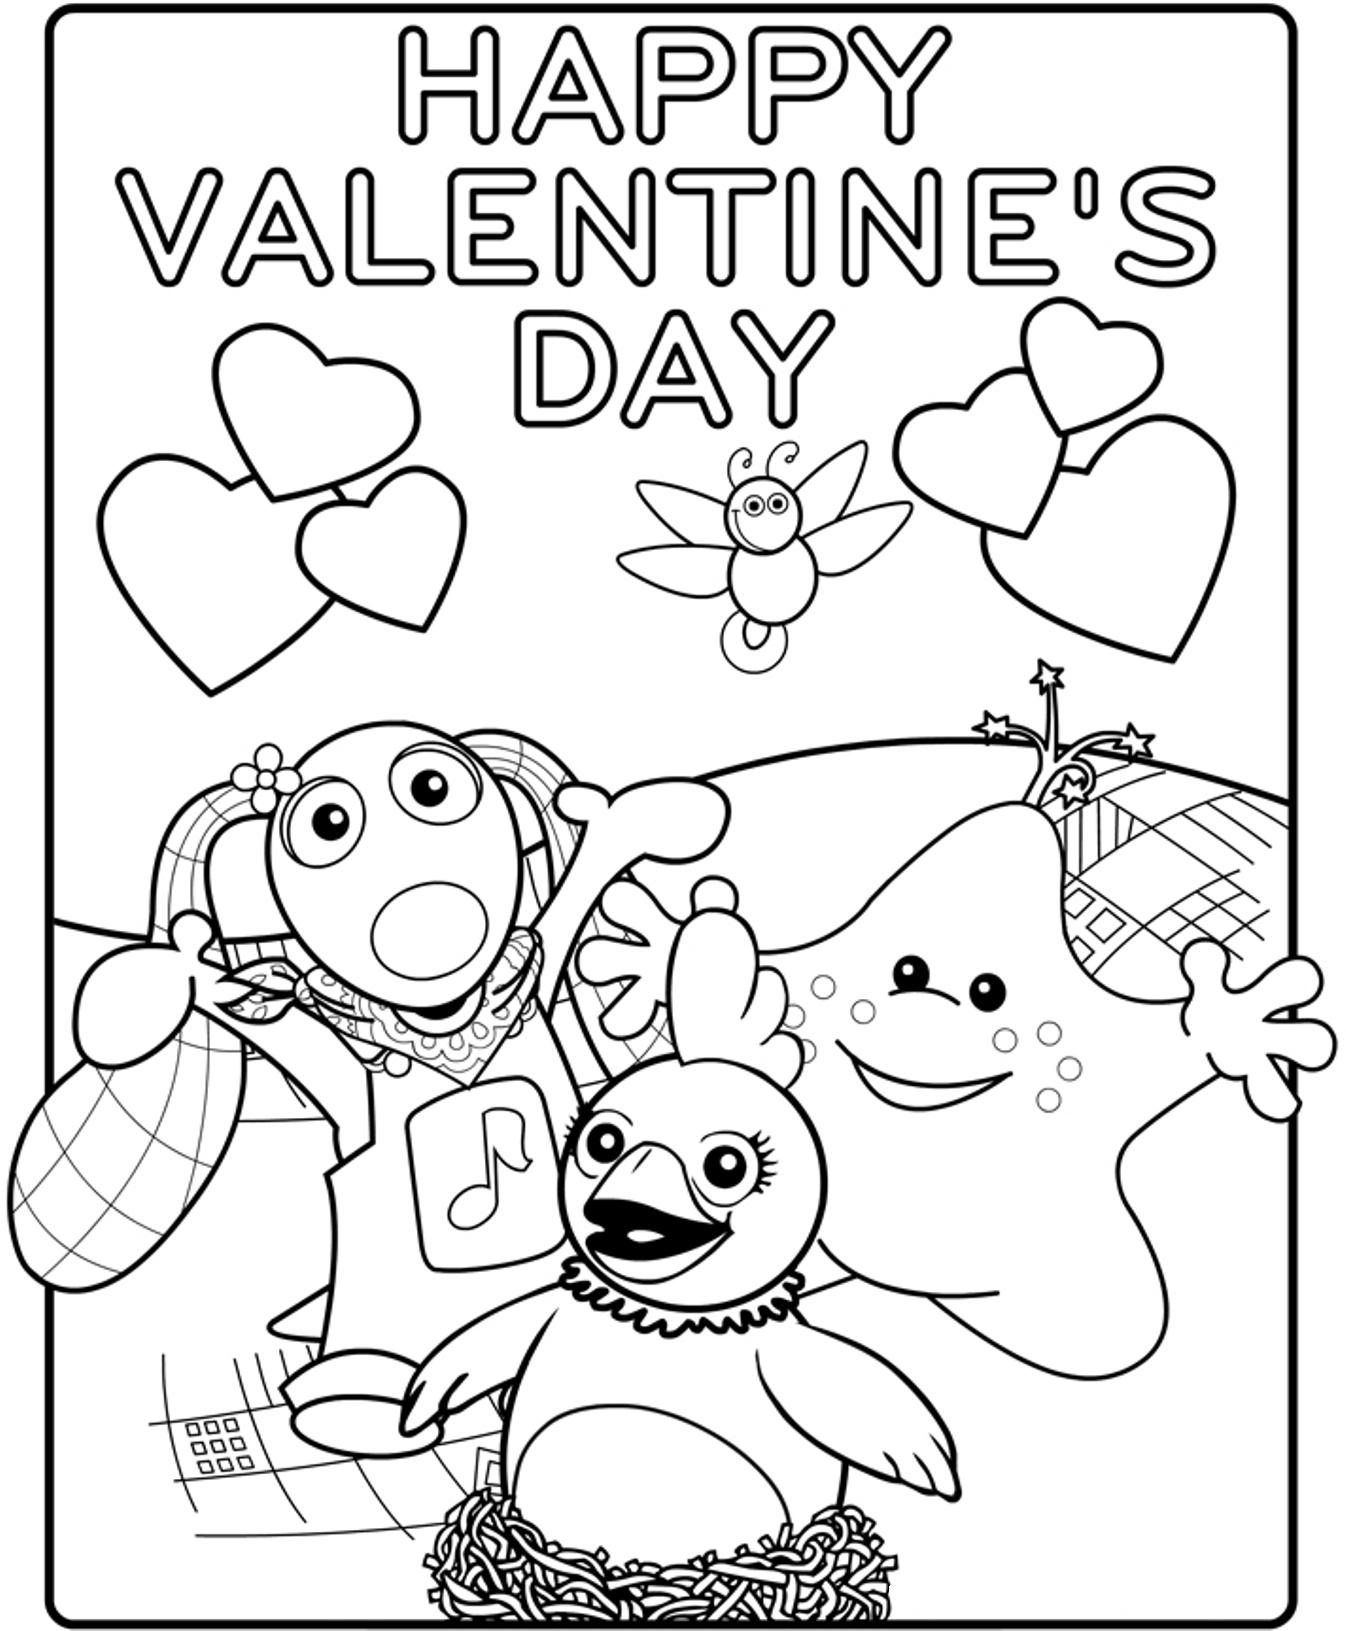 Printable Valentines Day Cards Best Coloring Pages For Kids In 2021 Valentines Day Coloring Page Printable Valentines Day Cards Valentine Coloring Pages